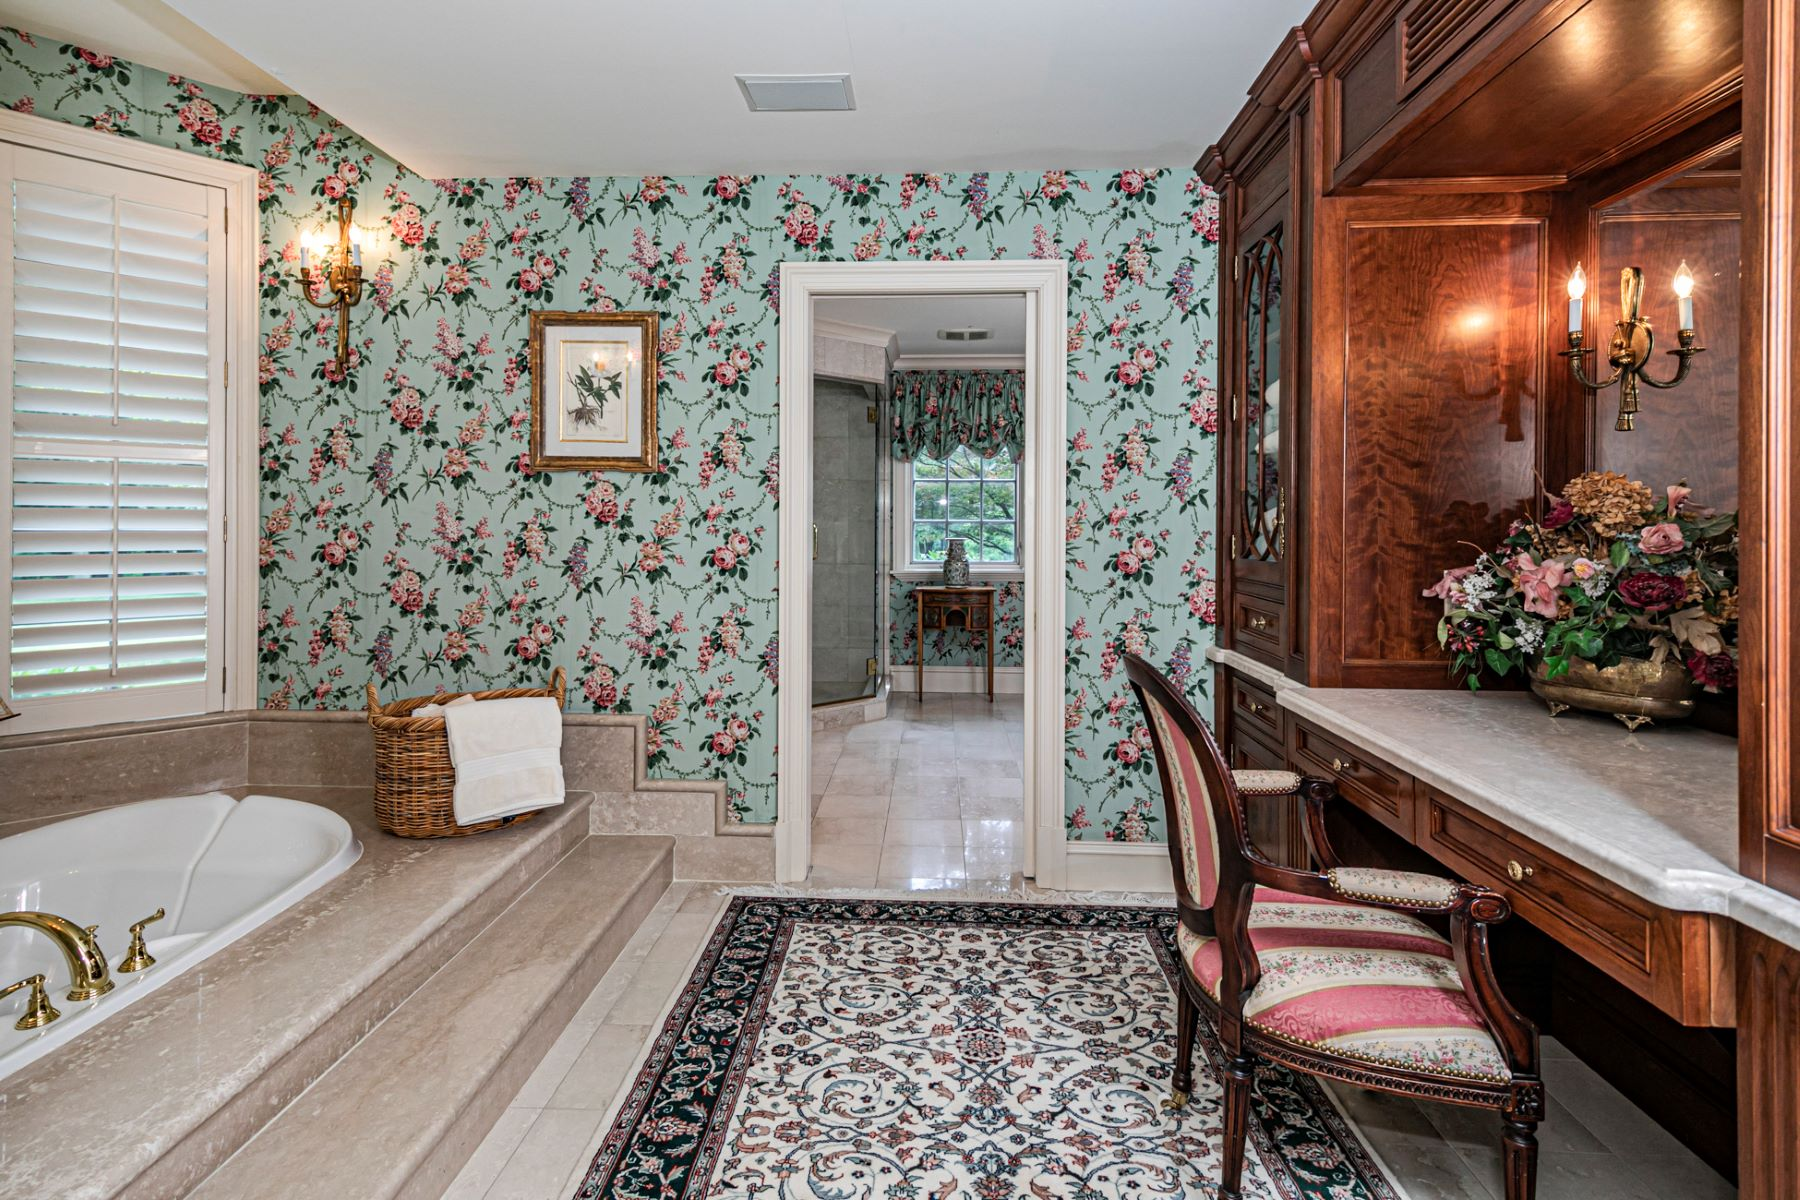 Additional photo for property listing at Private Compound with Every Amenity Imaginable 82 Aunt Molly Road, Hopewell, New Jersey 08525 United States